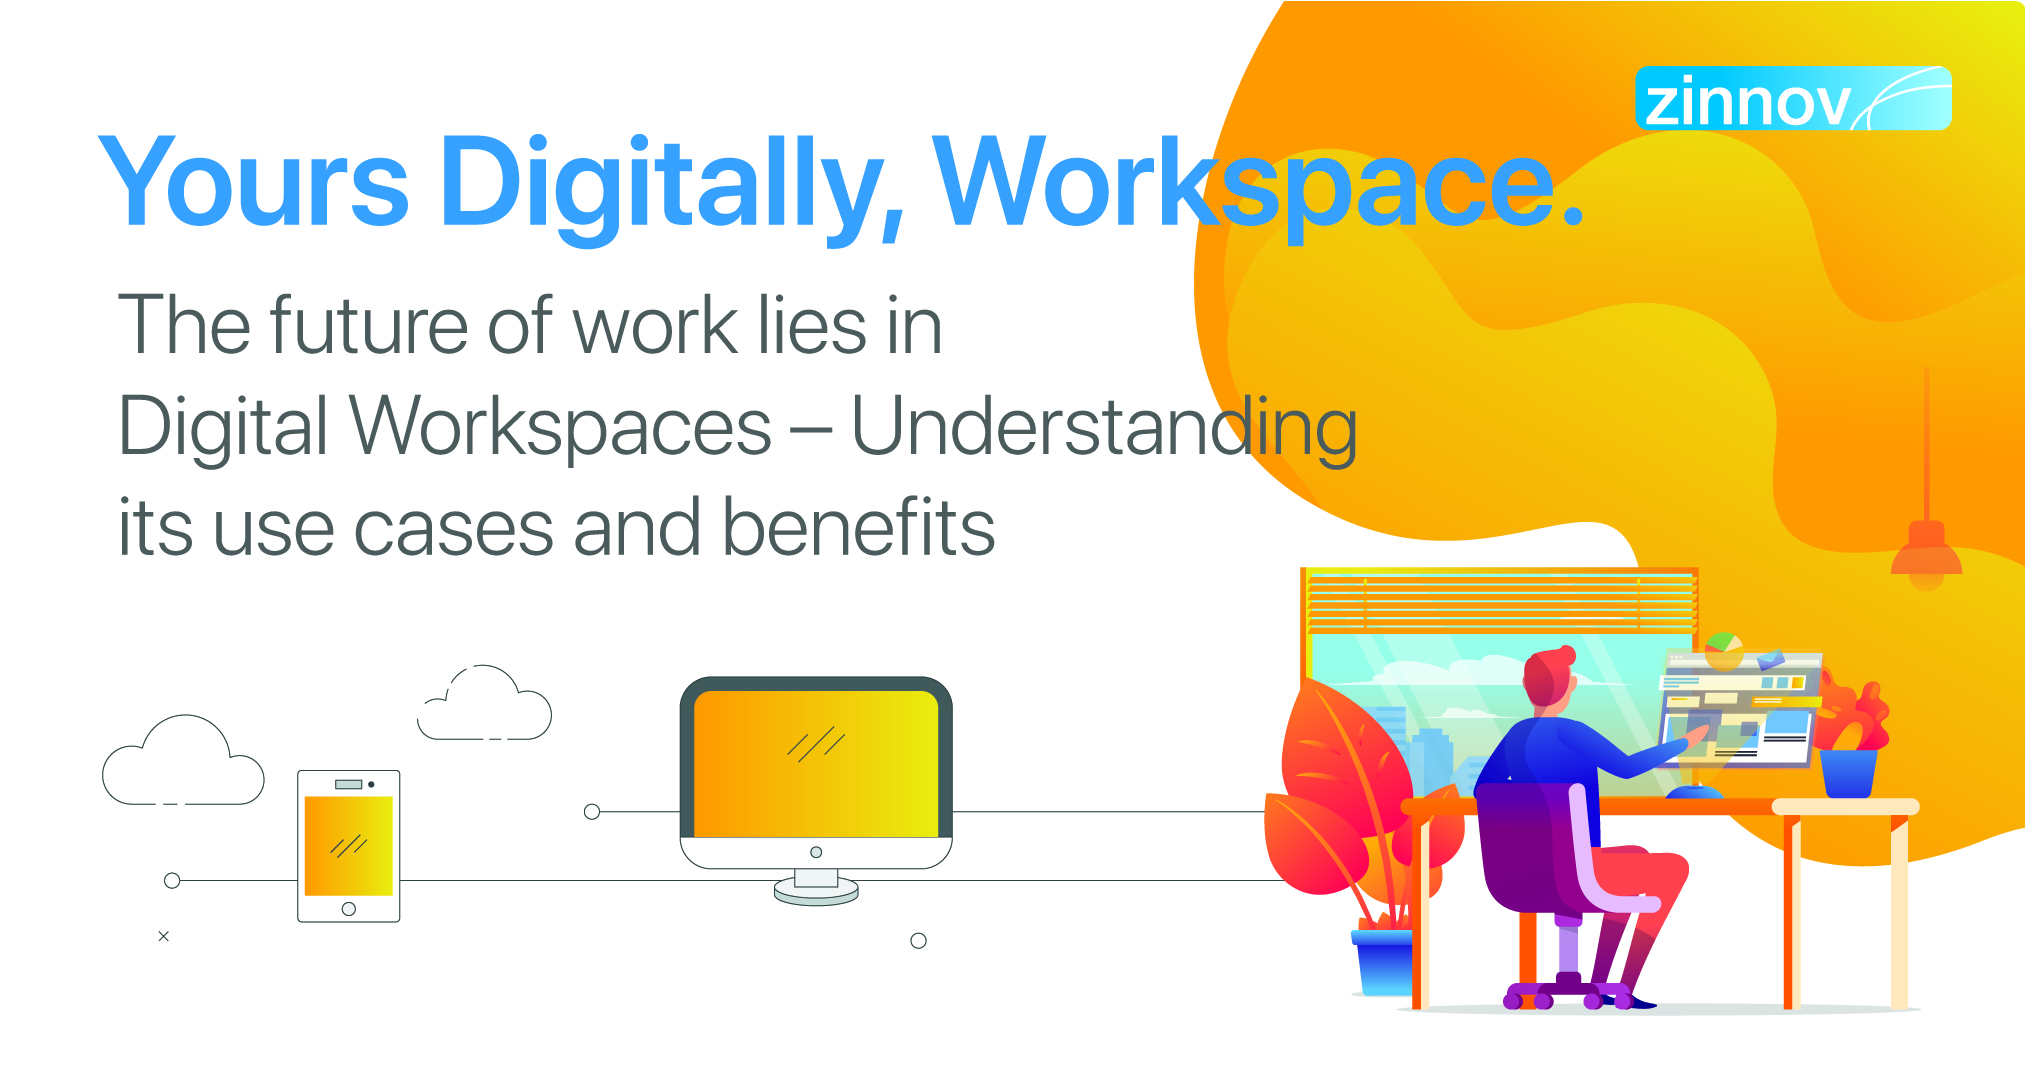 Digital Workspaces And The Future Of Work